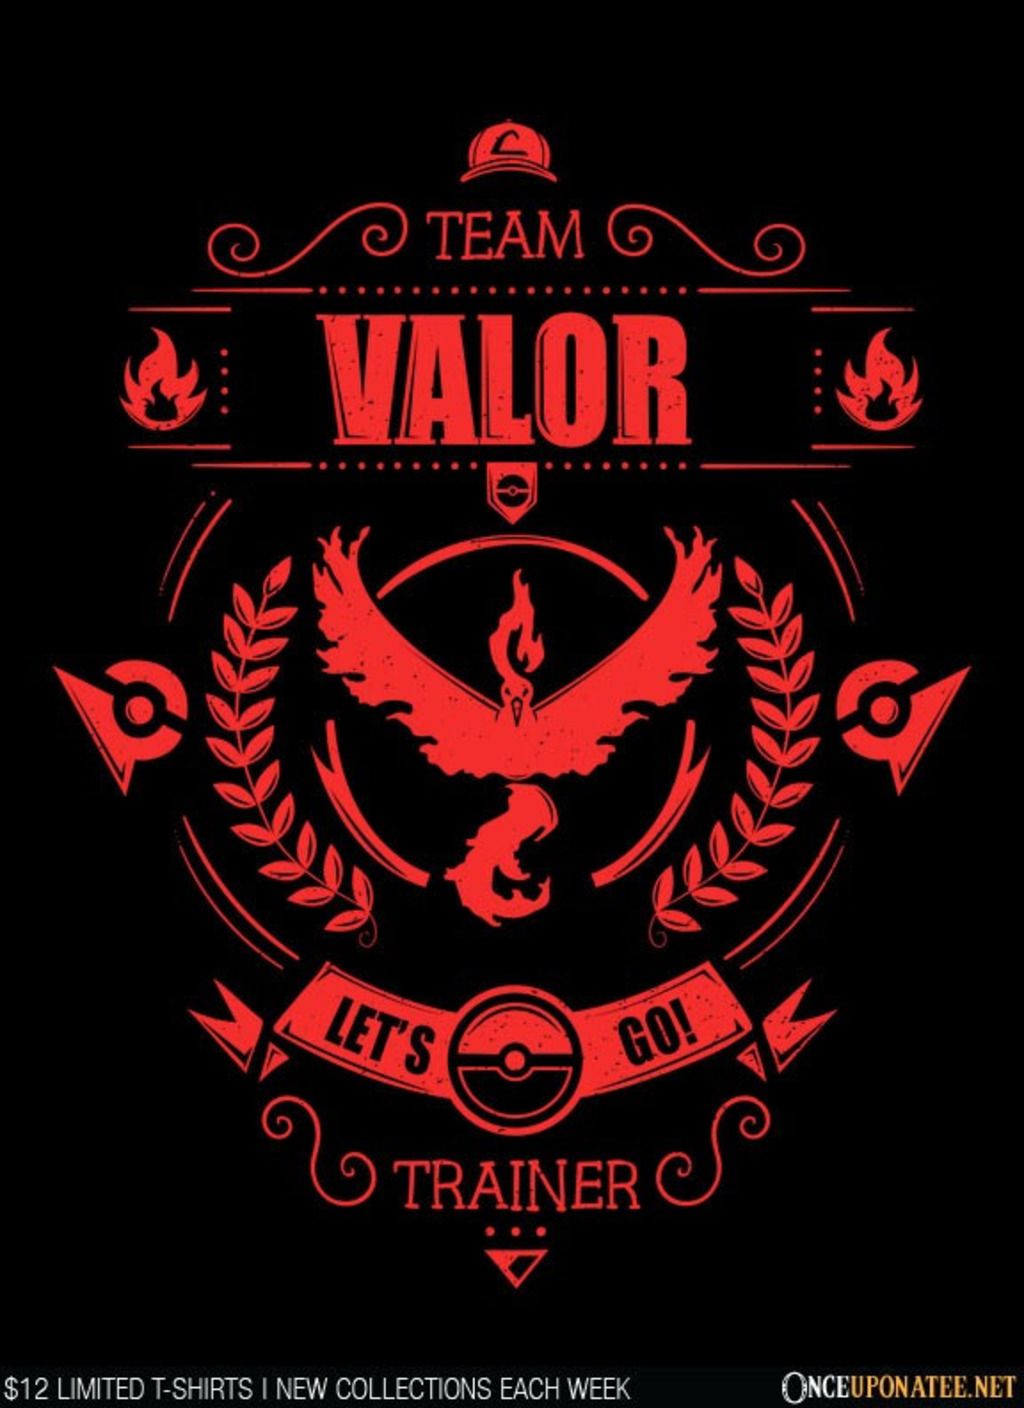 Once Upon a Tee: Team Valor